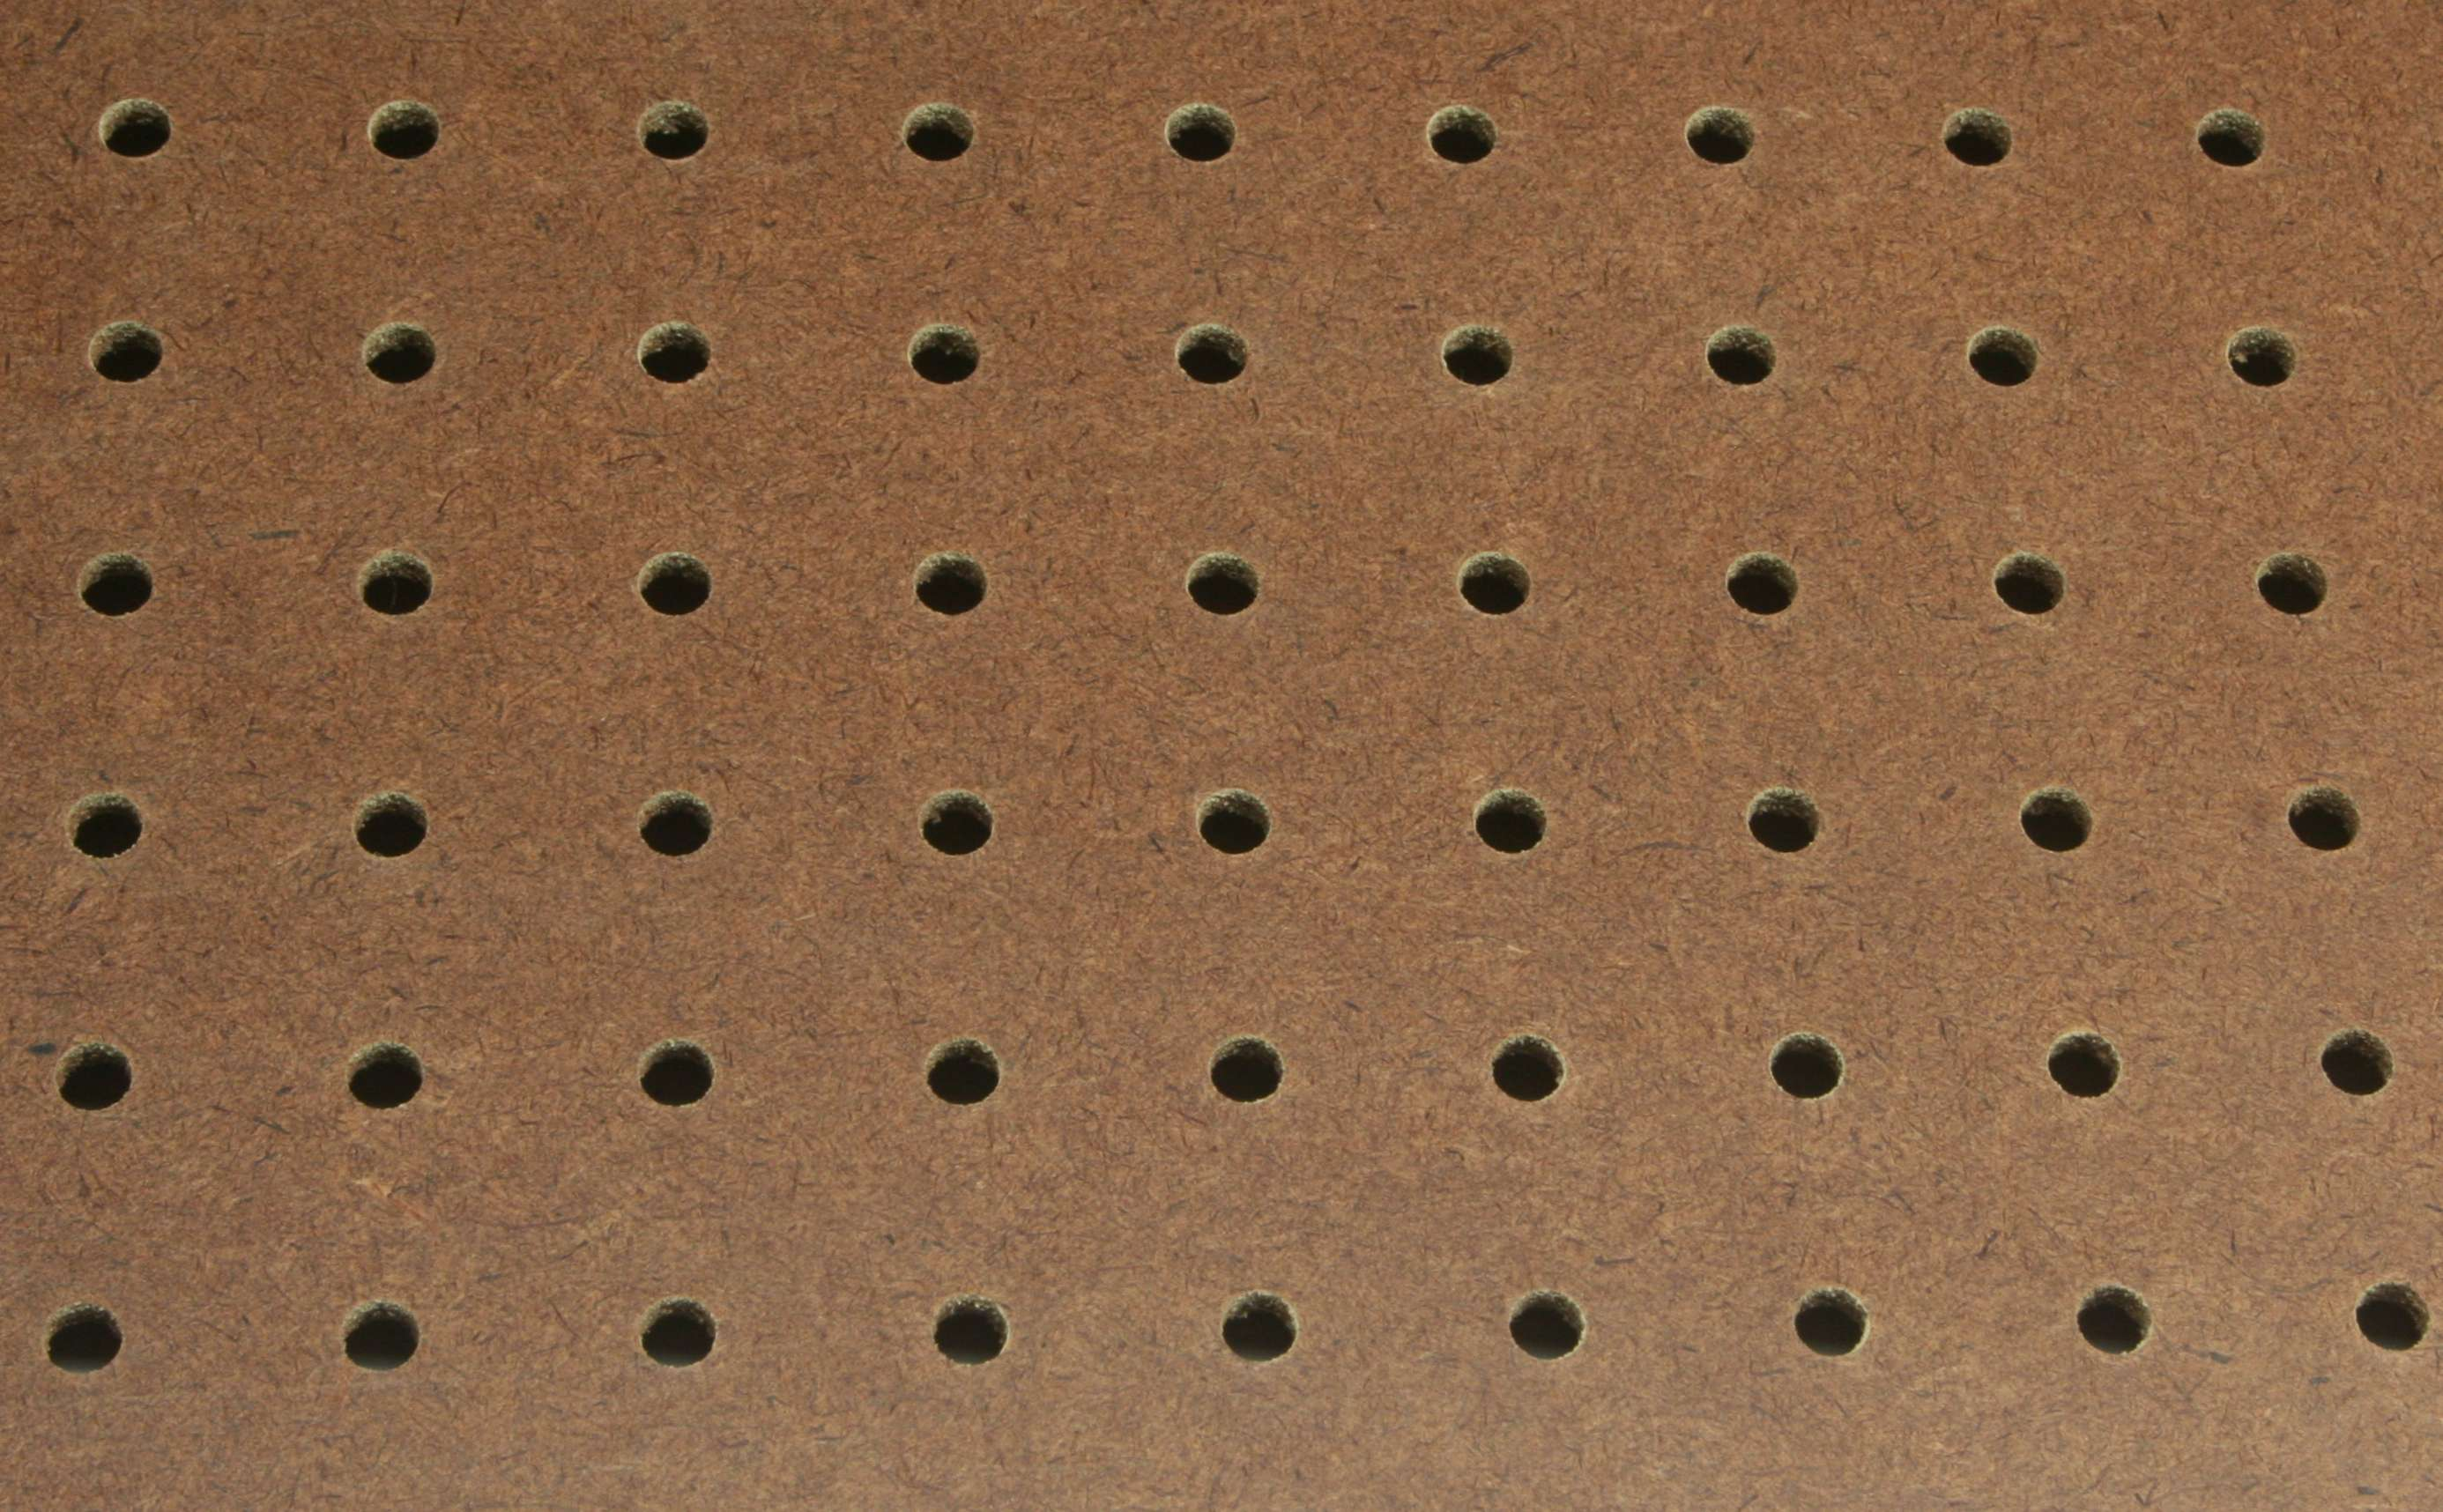 Particle board vs plywood - Perforated Hardboard